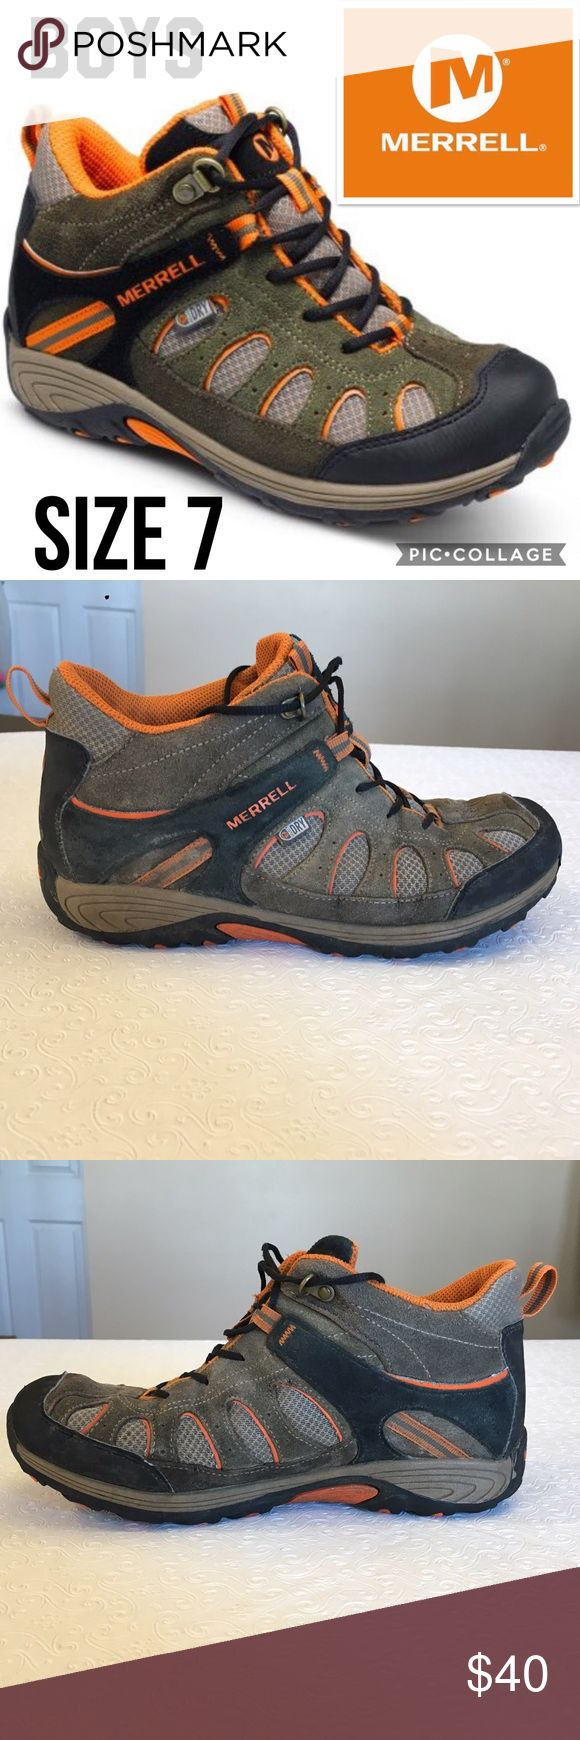 Merrell Boys Waterproof Hiking Boots Size 7 Great Condition! Merrell Shoes Boots